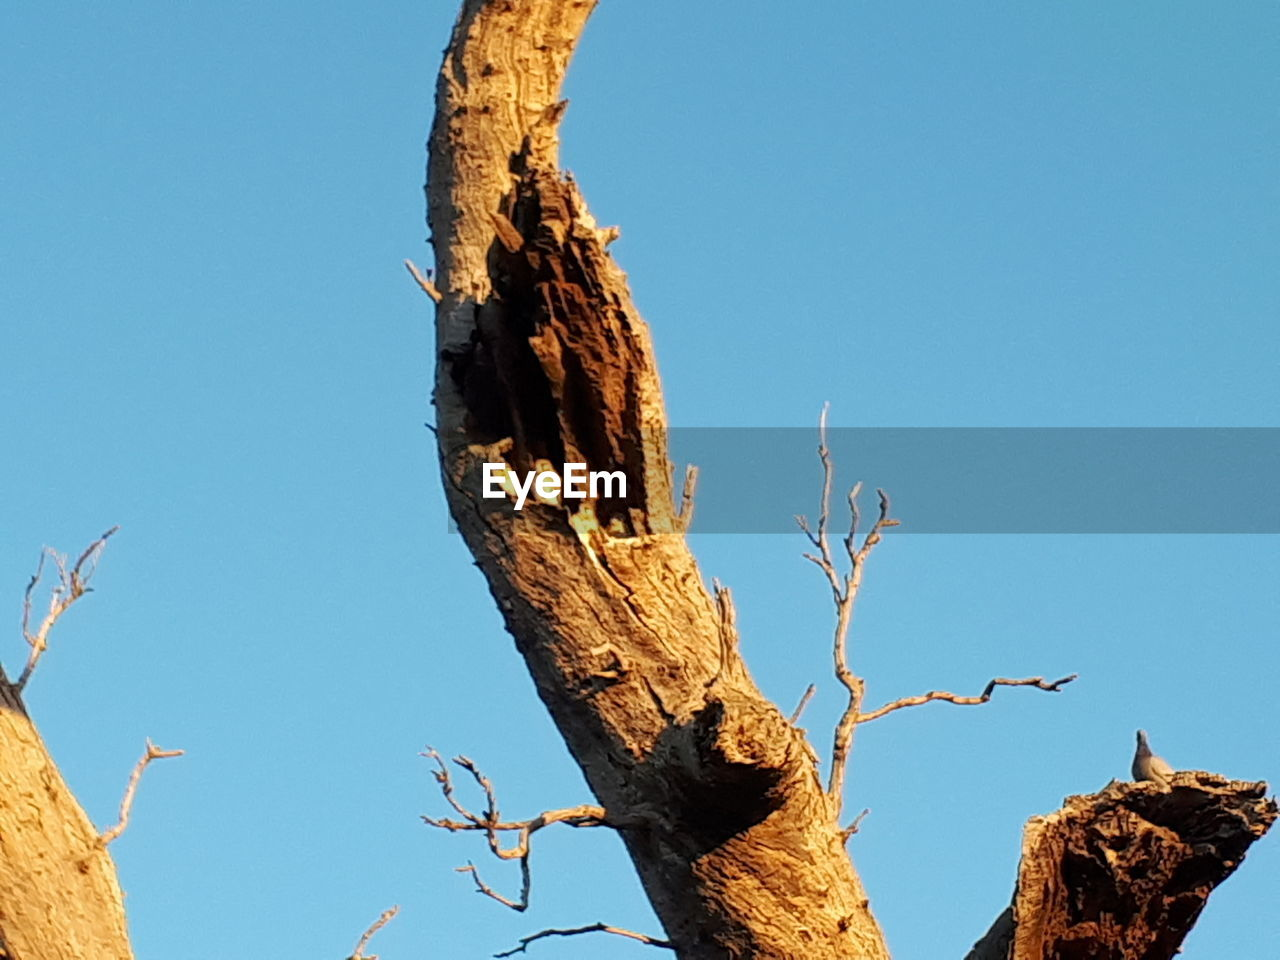 clear sky, low angle view, tree, day, tree trunk, blue, no people, dead plant, nature, branch, sunlight, outdoors, animals in the wild, dead tree, animal themes, perching, sky, close-up